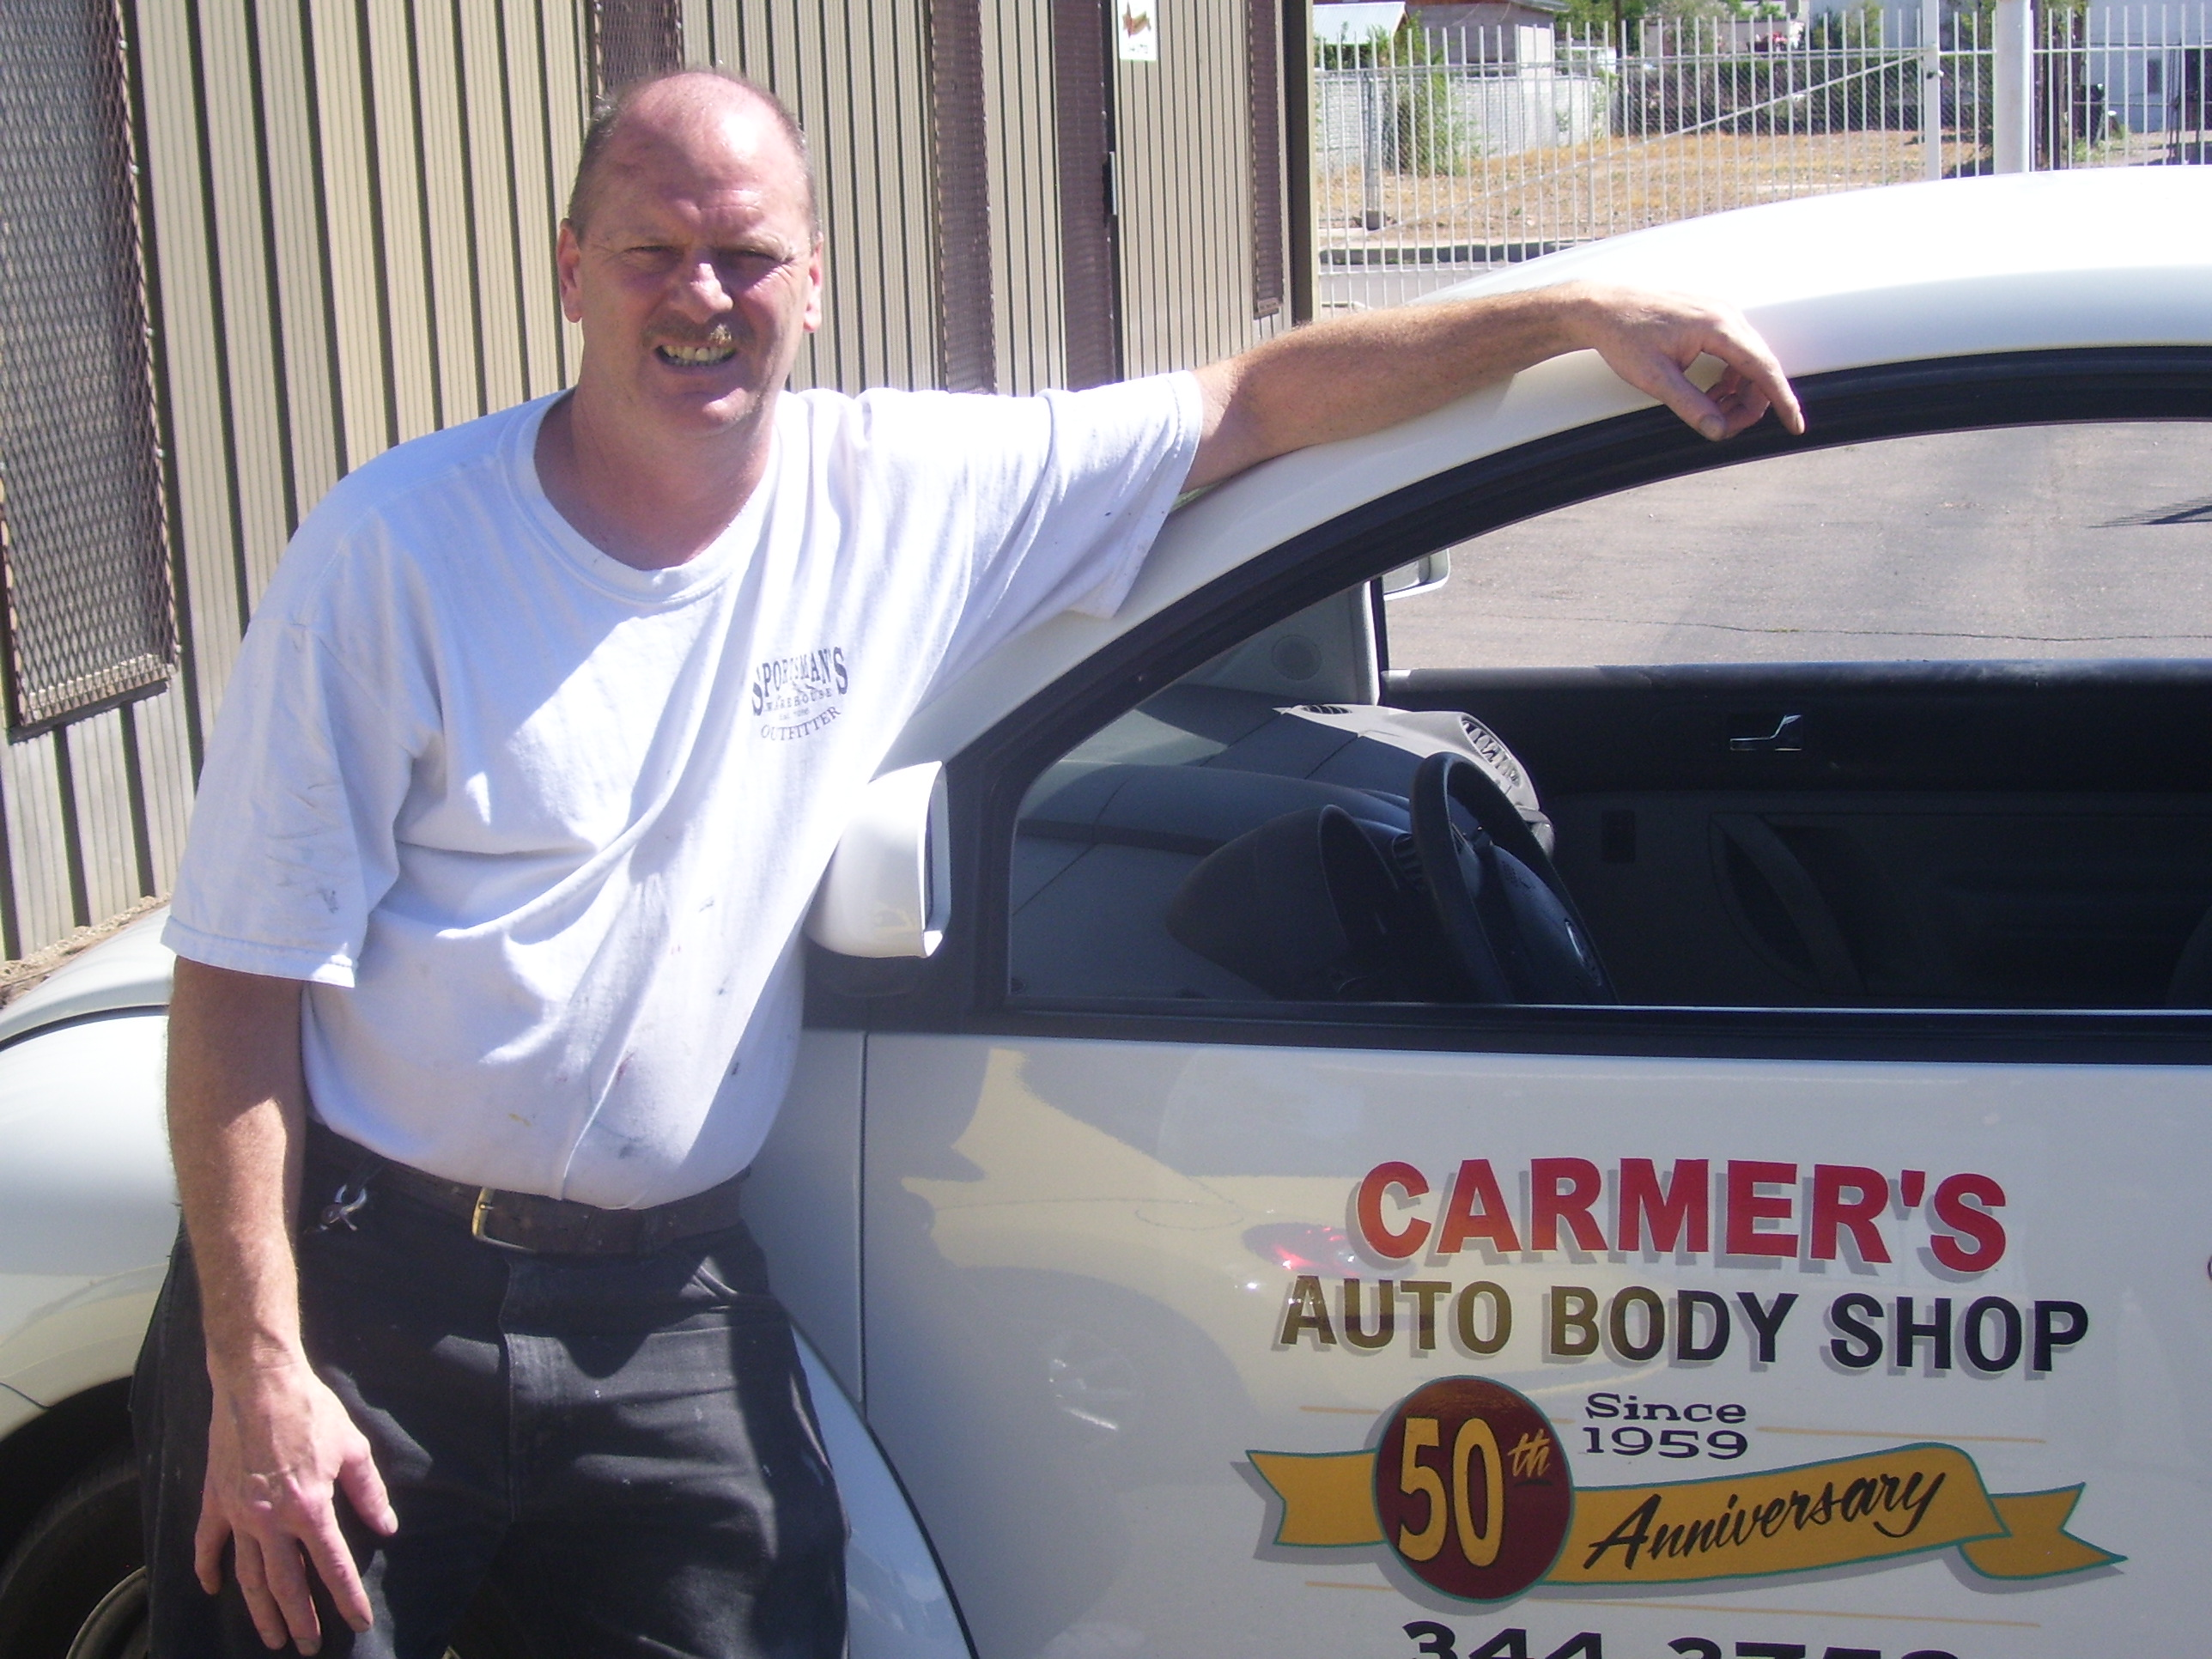 Carmer's Auto Body and Paint Shop